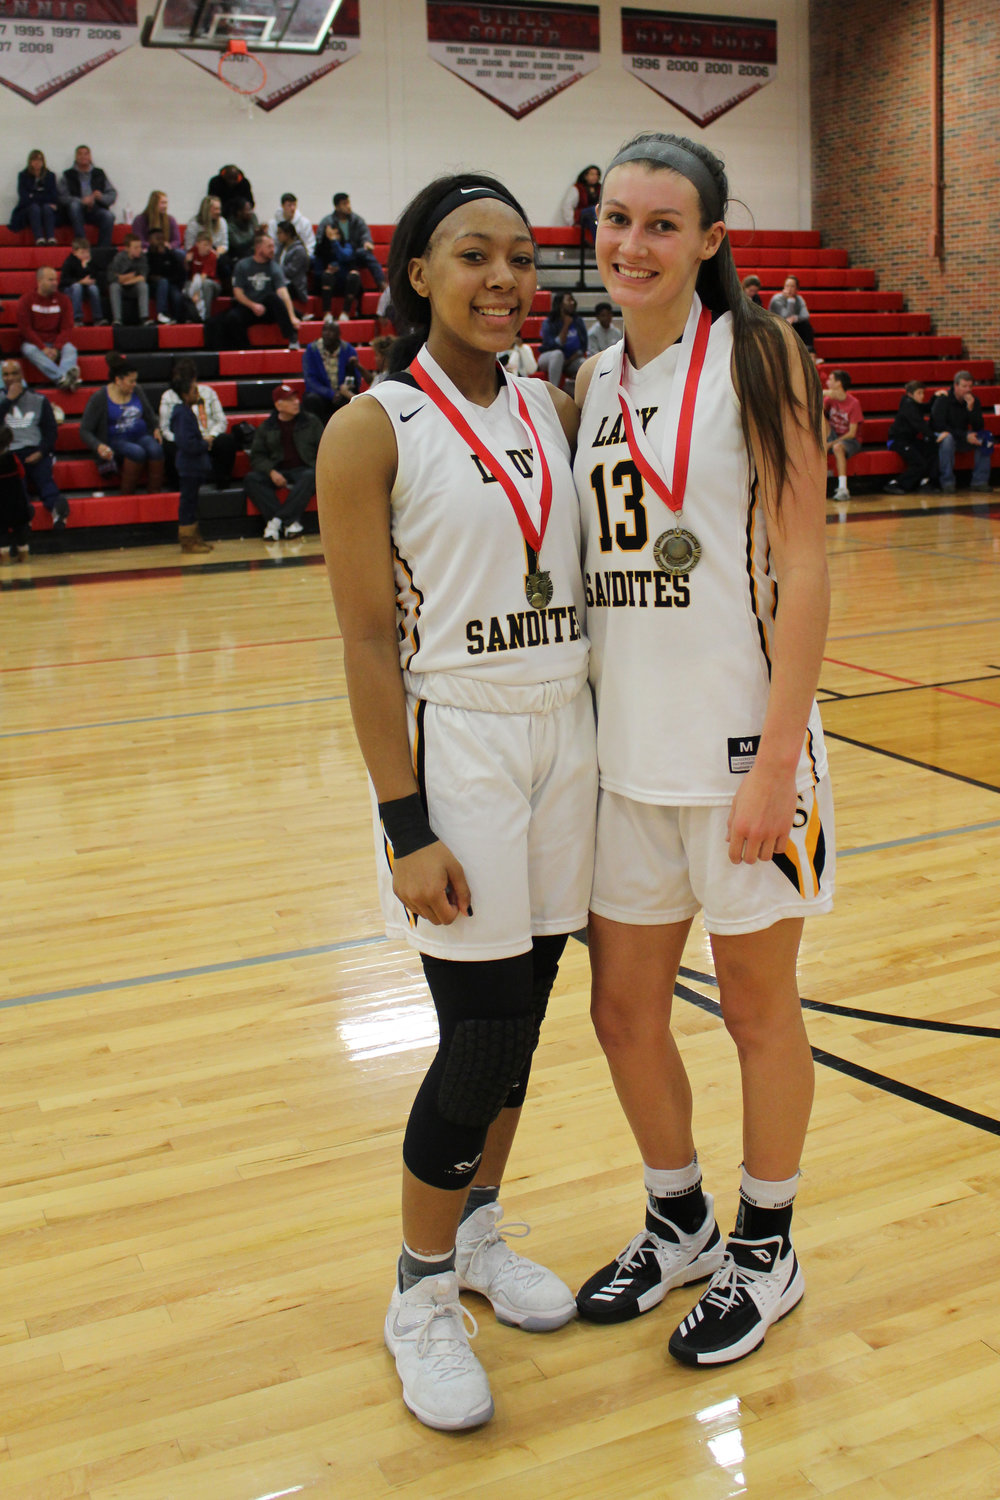 Charles Page High School juniors Destiny Johnson (left) and Holly Kersgieter (right) were named to the Frontier Valley Conference First Team for the 2017-2018 season. (Photo: Scott Emigh).